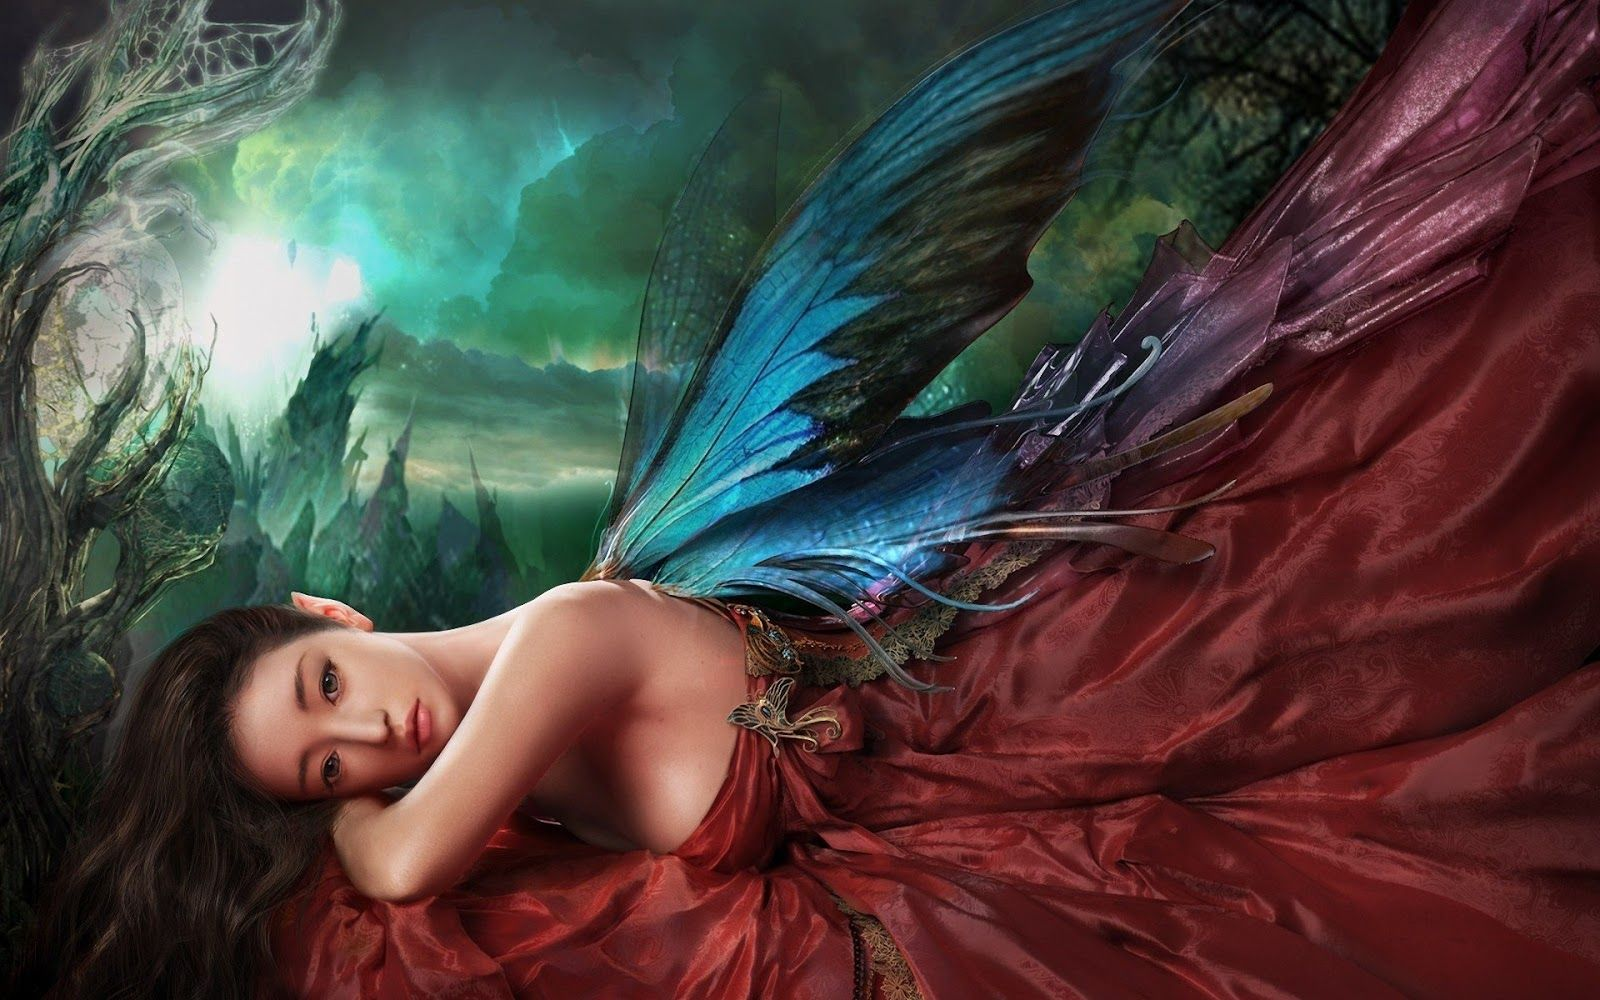 Beautiful Pictures Of Angels File Name Beautiful Angel Hd Wallpapers Fairy Wallpaper Beautiful Fairies Fantasy Girl